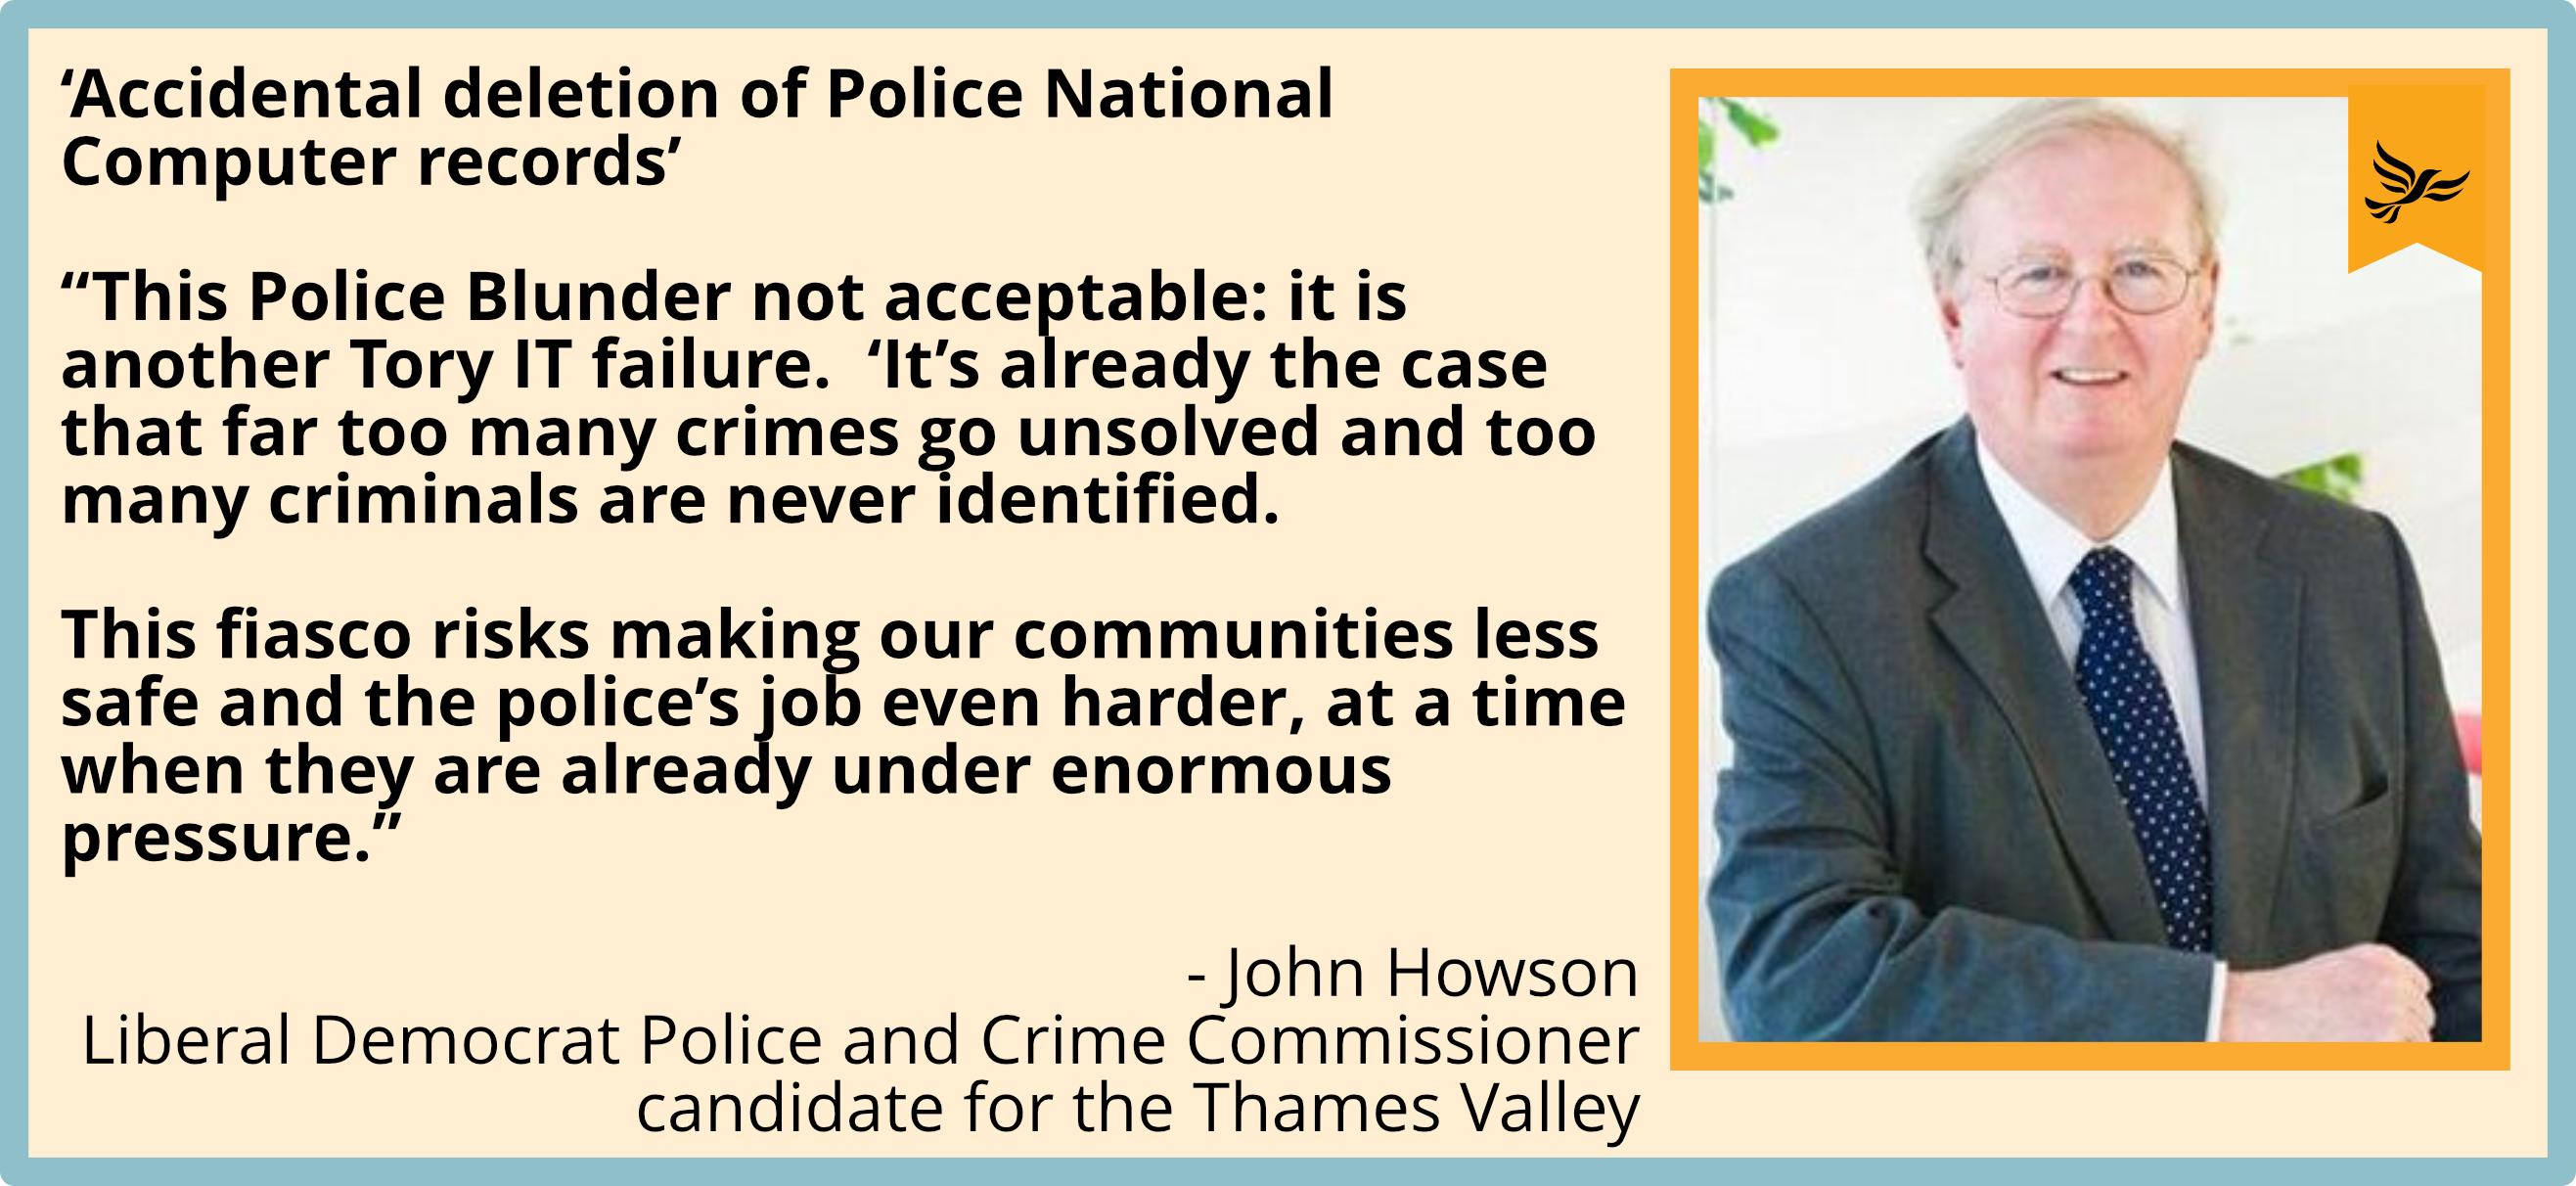 'It's already the case that far too many crimes go unsolved and too many criminals are never identified. This fiasco risks making our communities less safe and the police's job even harder, at a time when they are already under enormous pressure.'